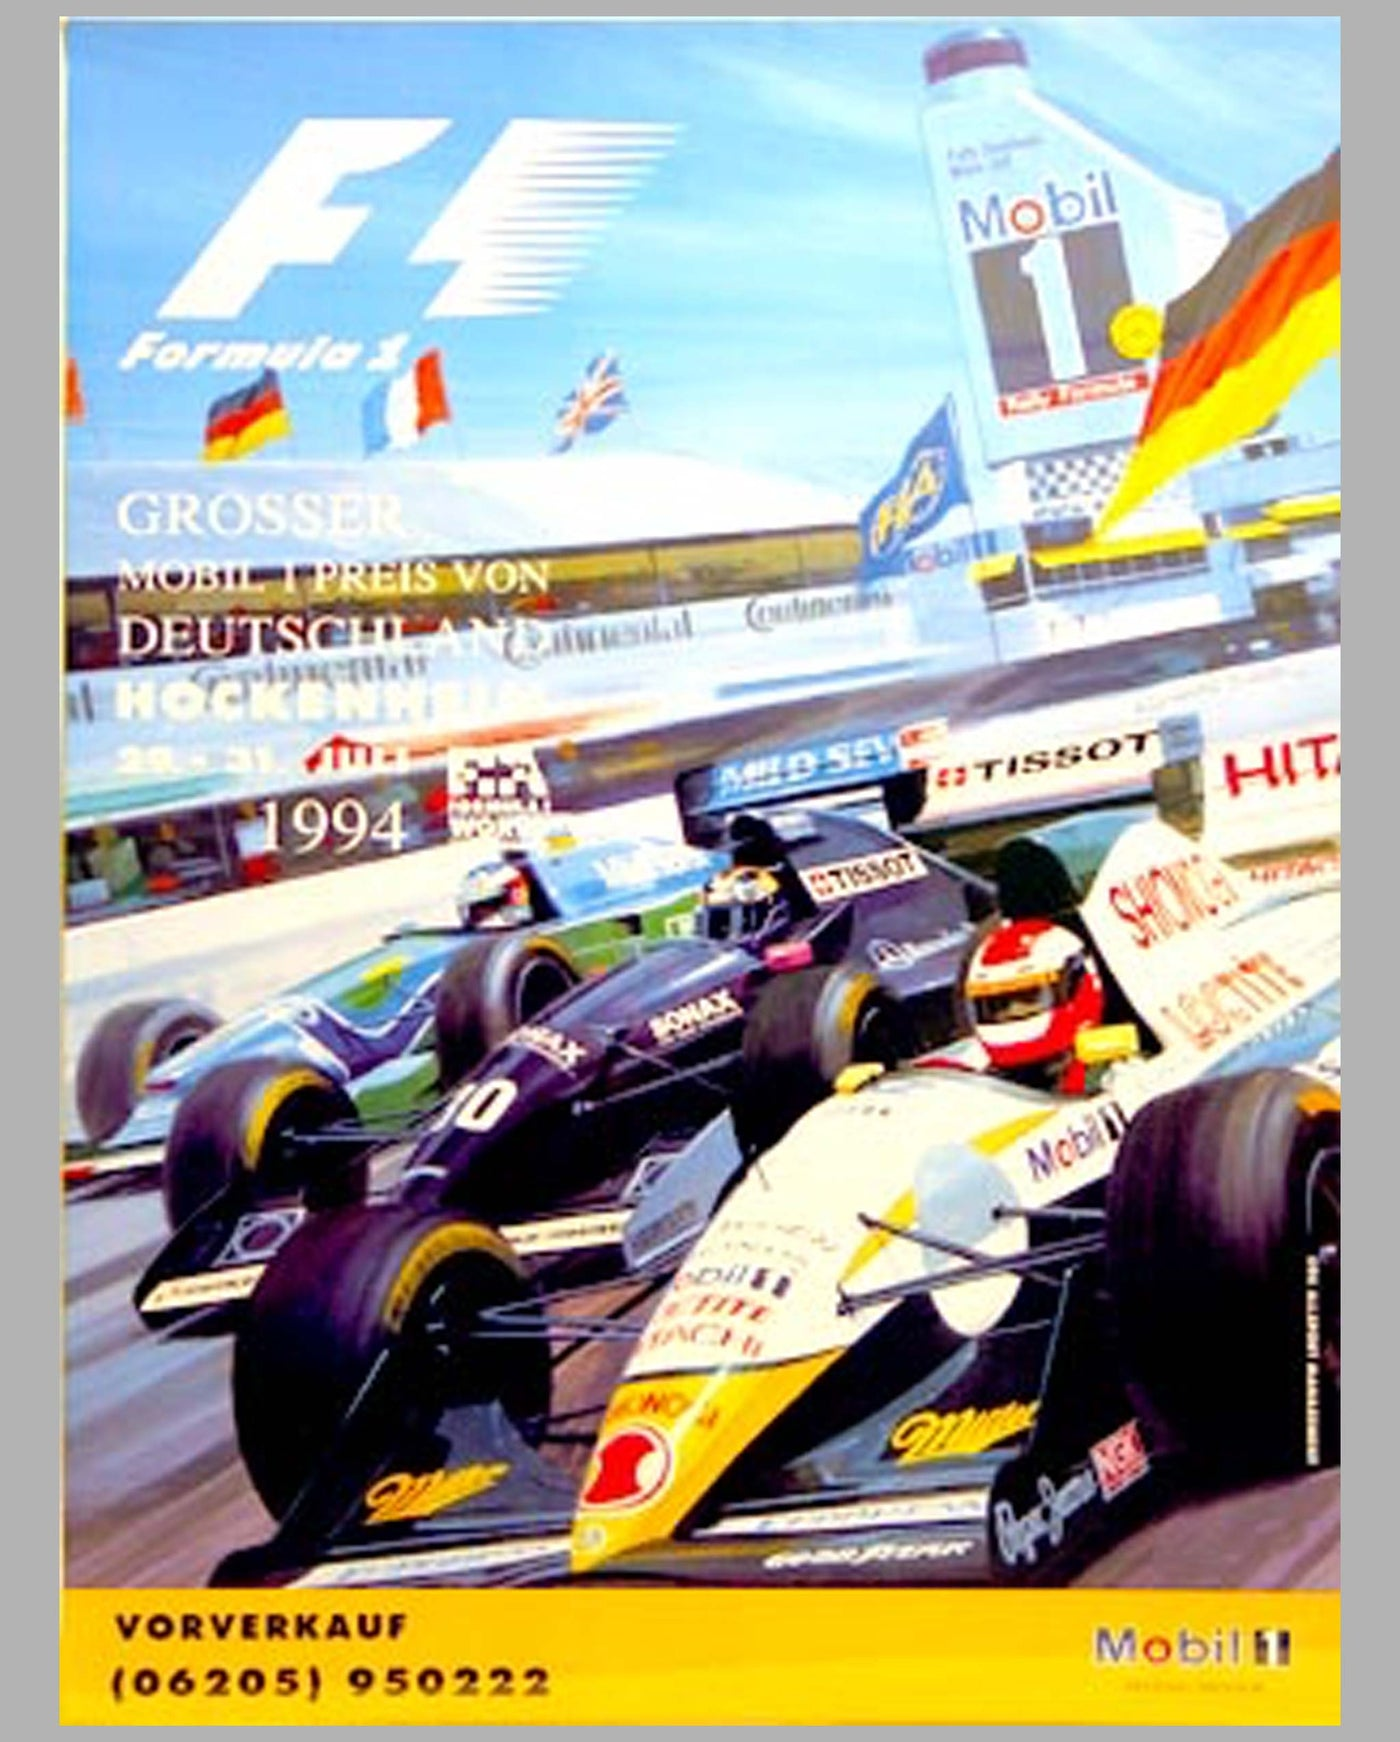 GP of Germany Hockenheim 1994 official event poster